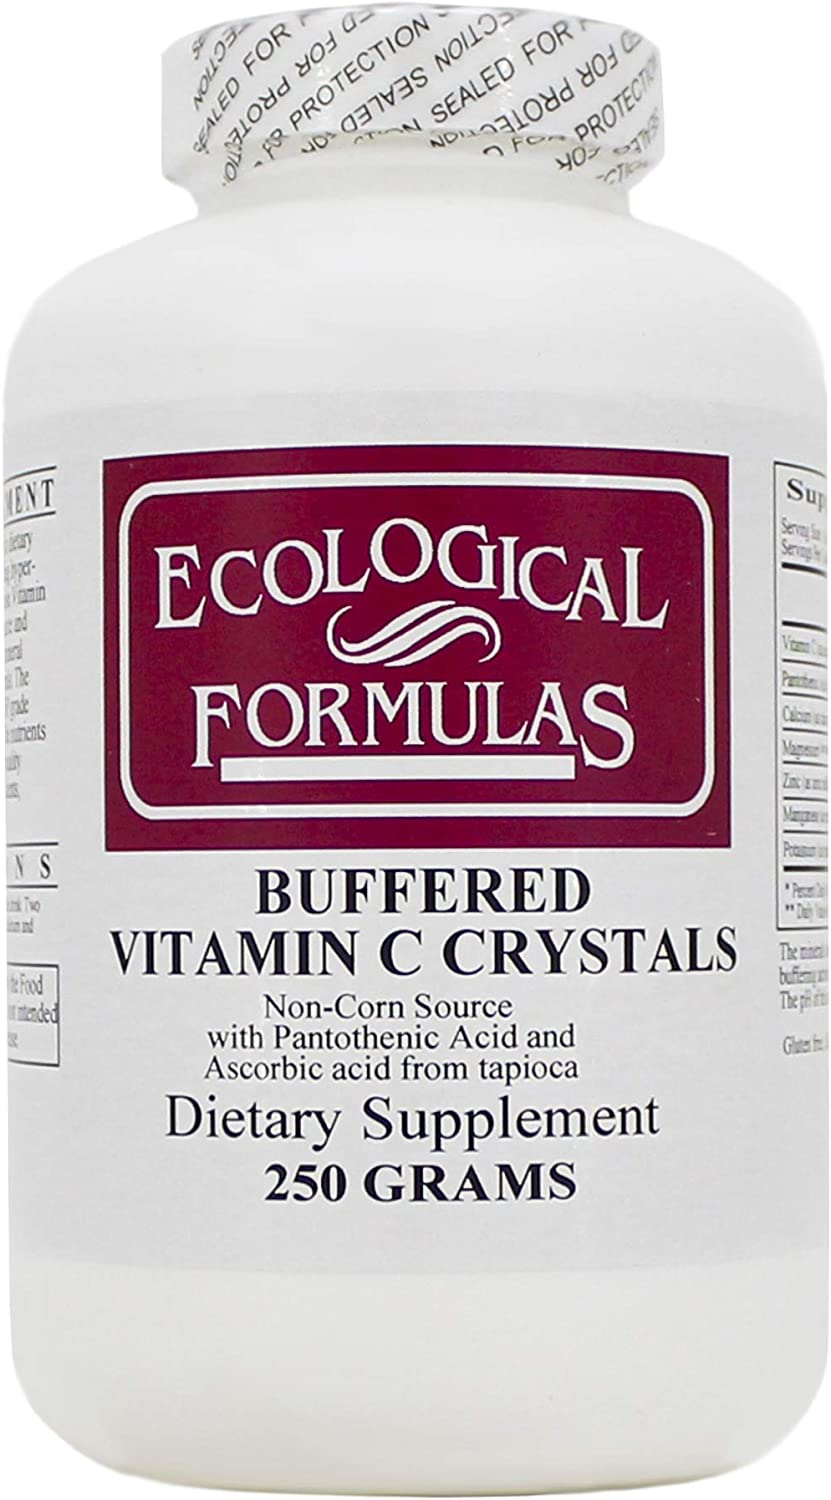 Buffered C Crystals(Non-Corn) 250 Grams - Pack of 2